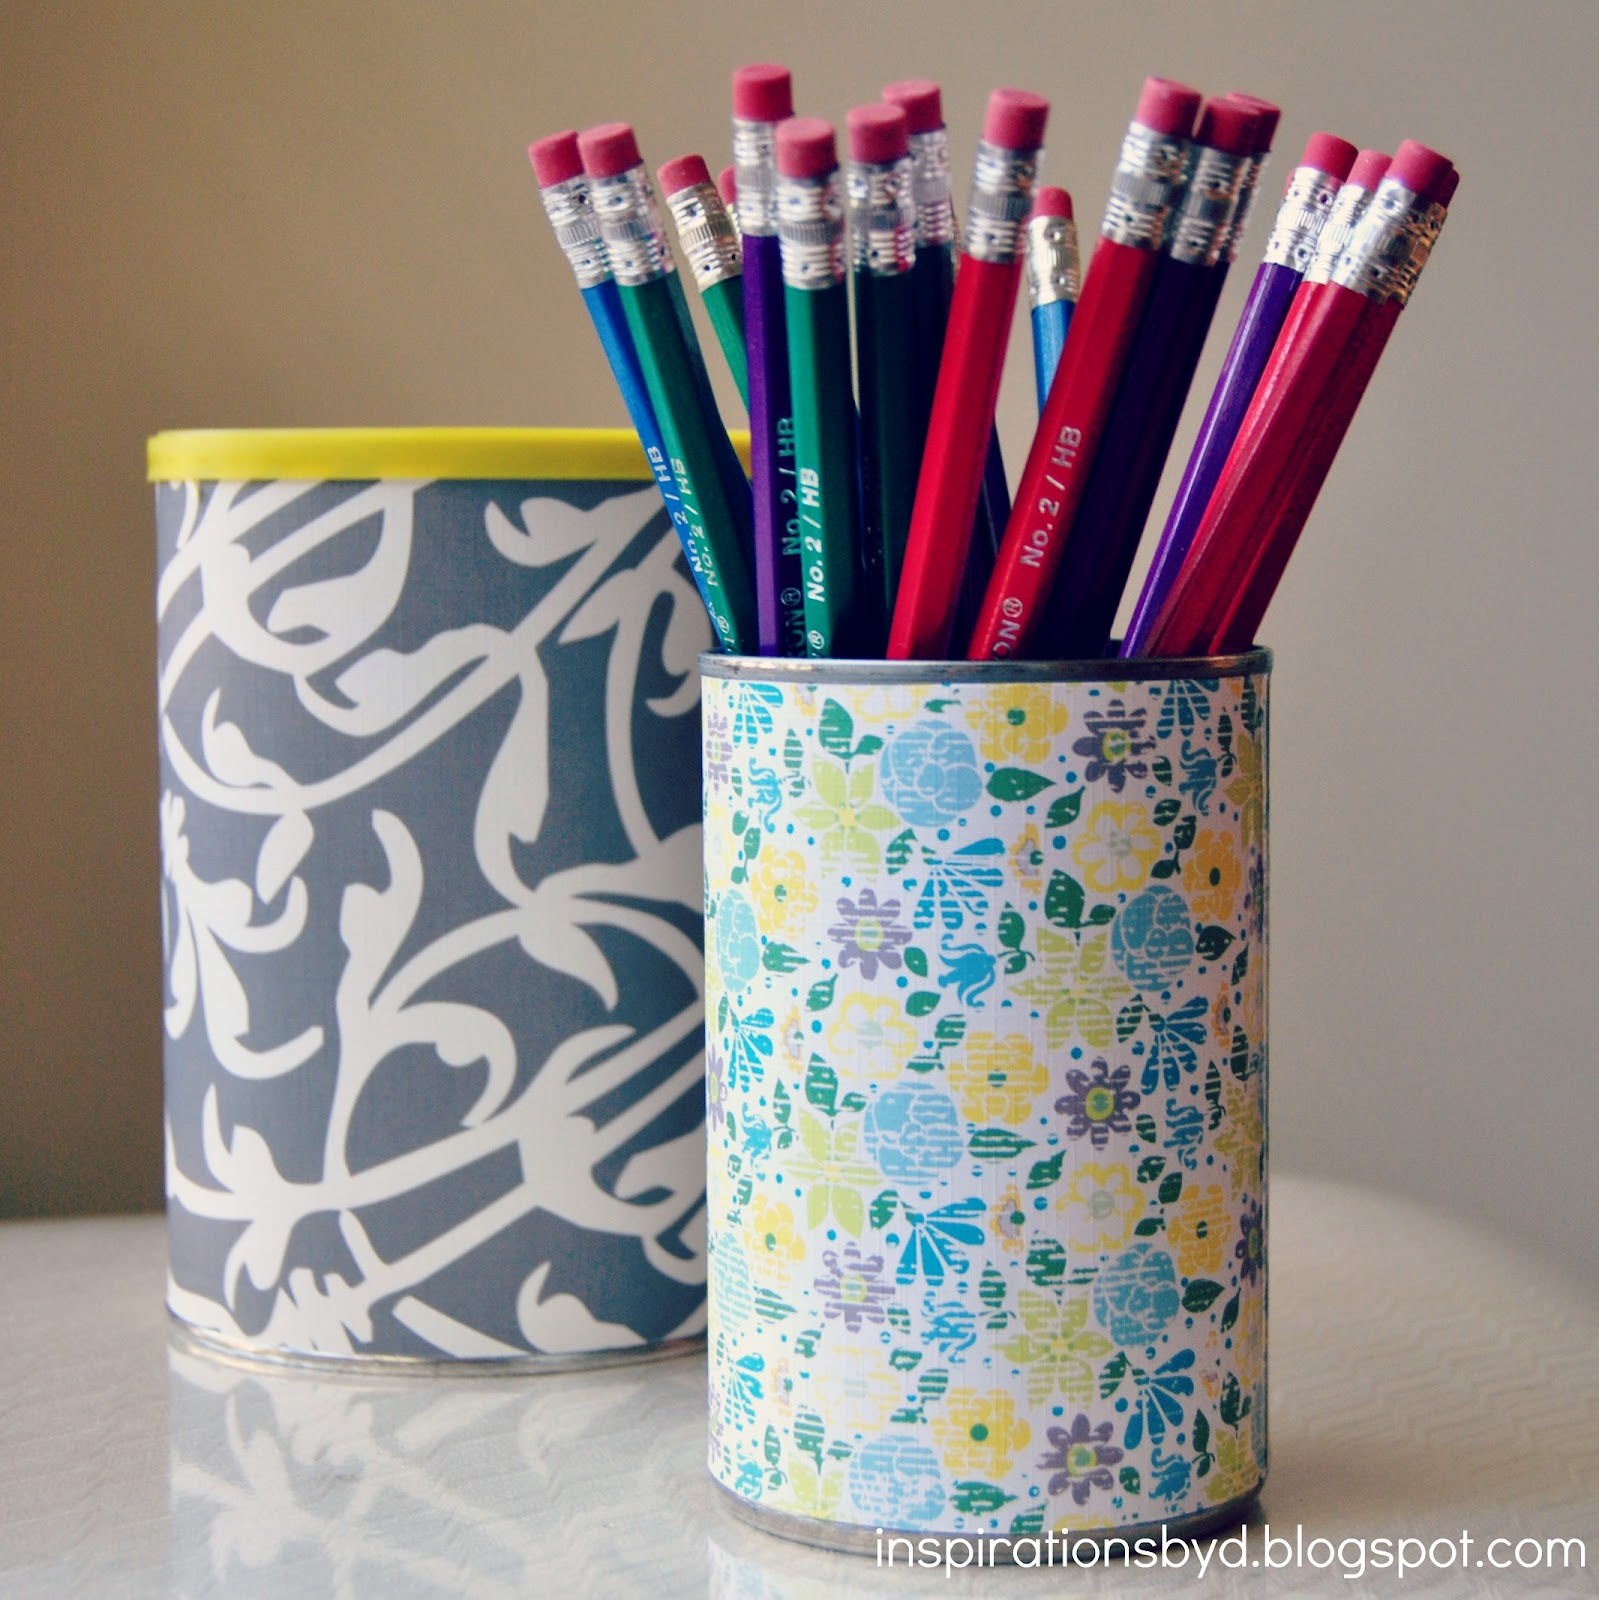 Crafting on a Budget: DIY: Pencil Holder Using an Upcycled Can